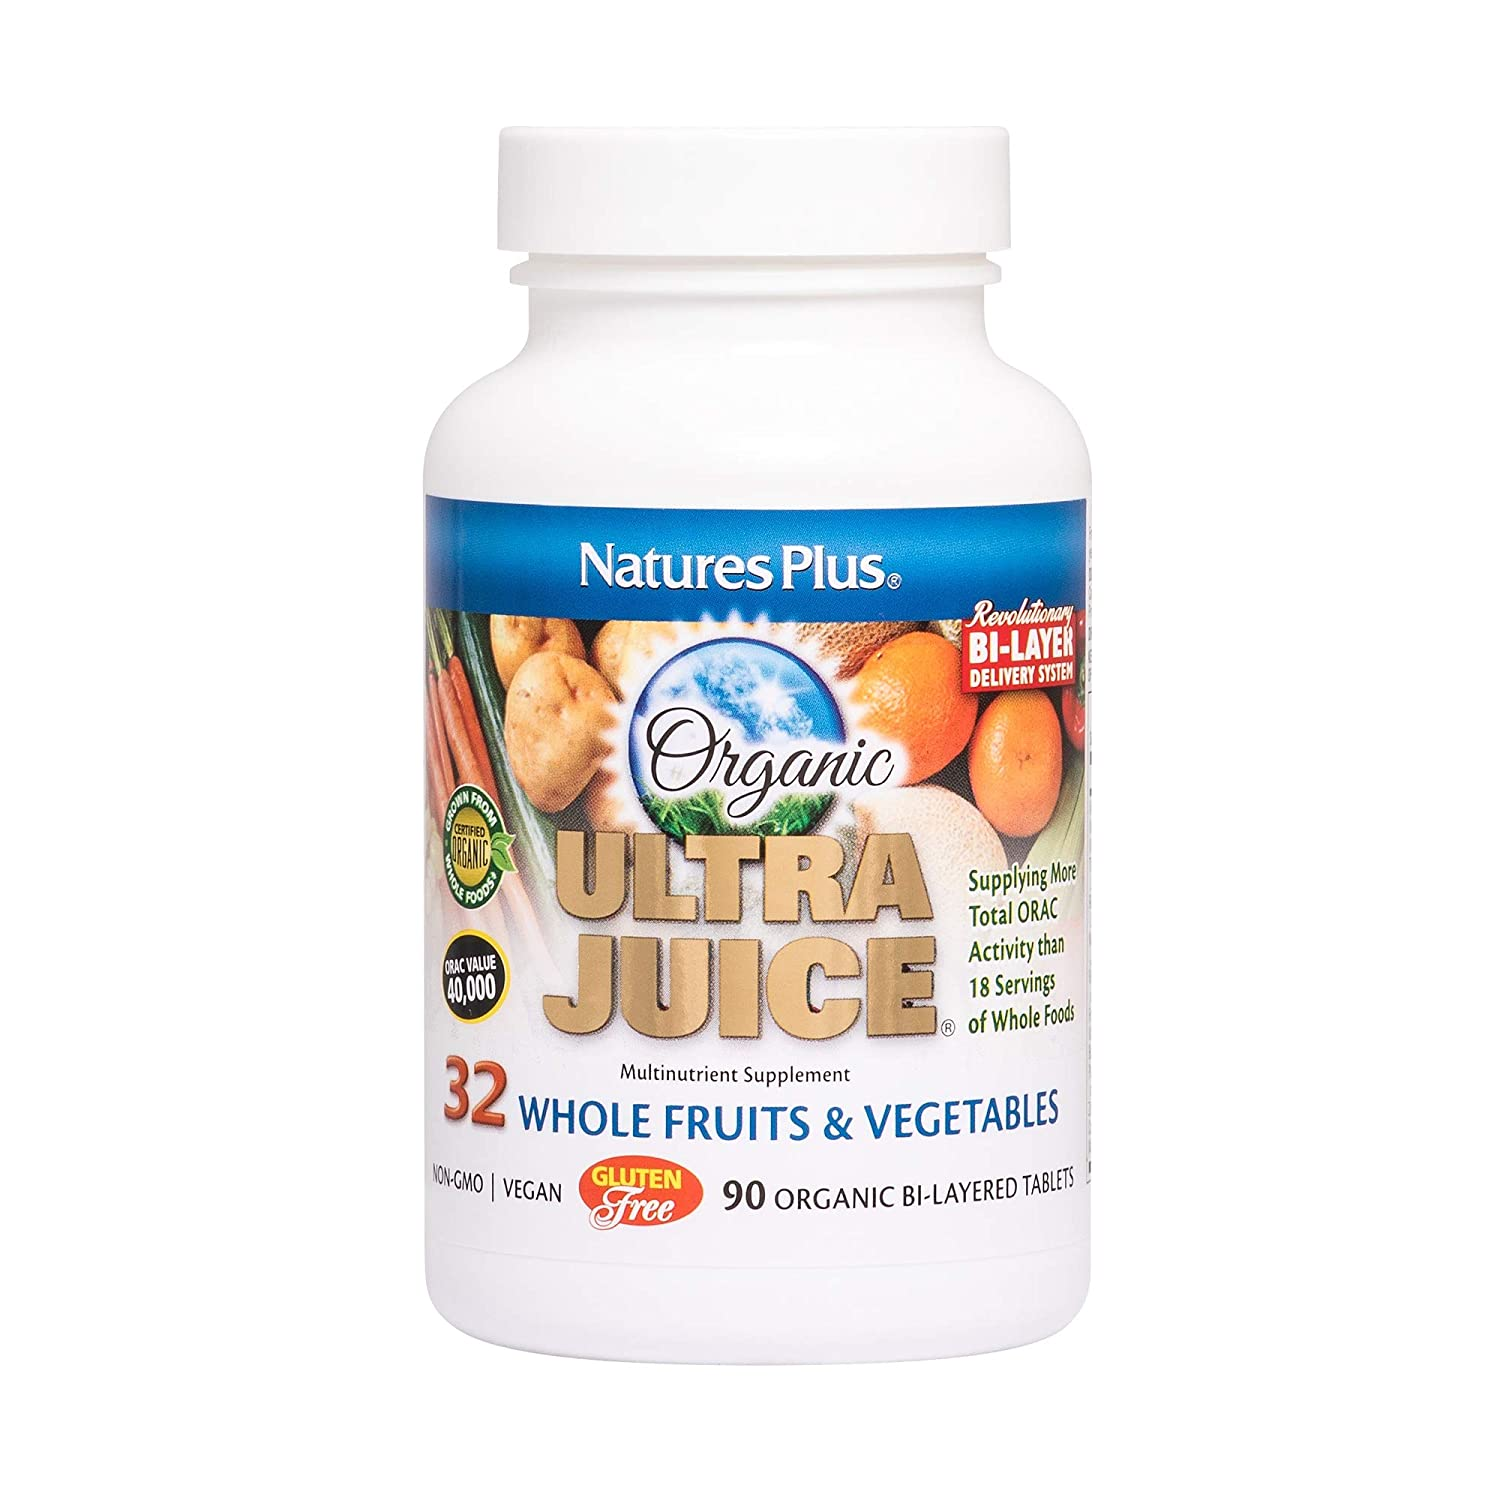 NaturesPlus Ultra Juice Multivitamin – 90 Vegetarian Tablets, Bilayered – Whole Food Supplement – Whole Fruits Vegetables, Antioxidant – Non-GMO, Vegan, Organic, Gluten-Free – 45 Servings